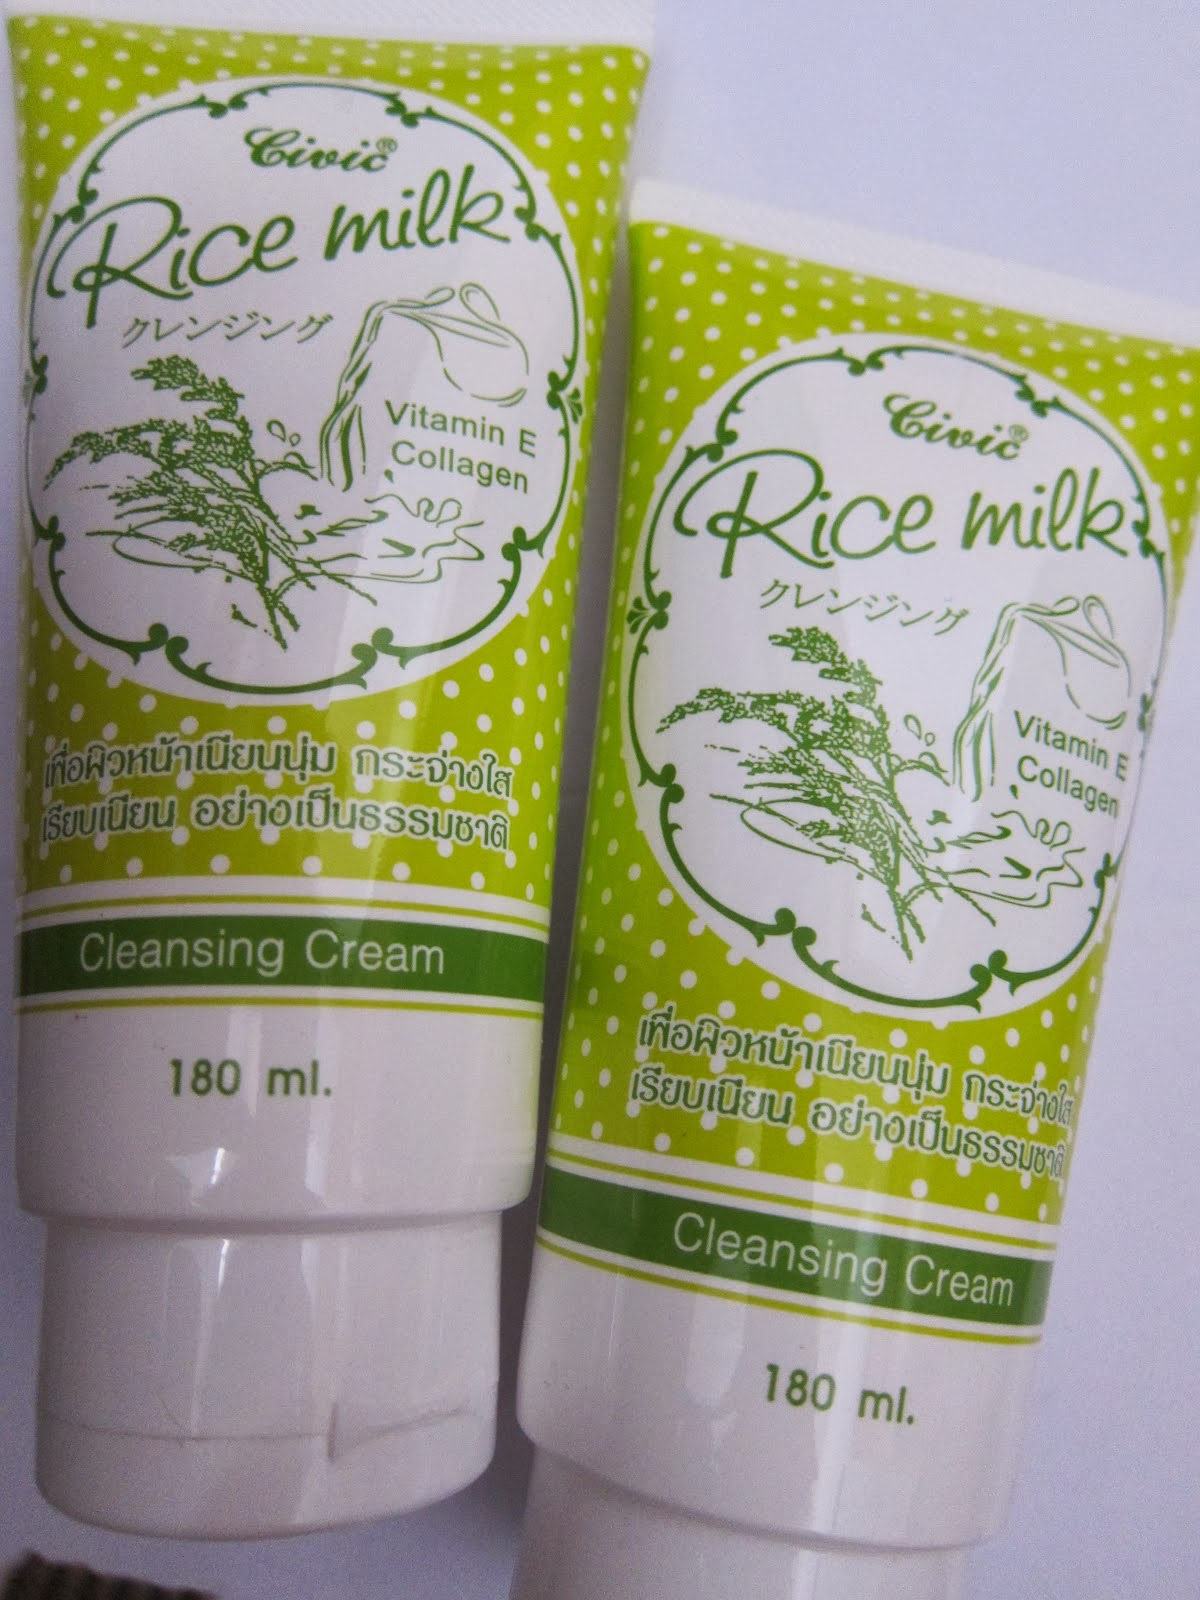 RICE MILK CLEANSING CREAM